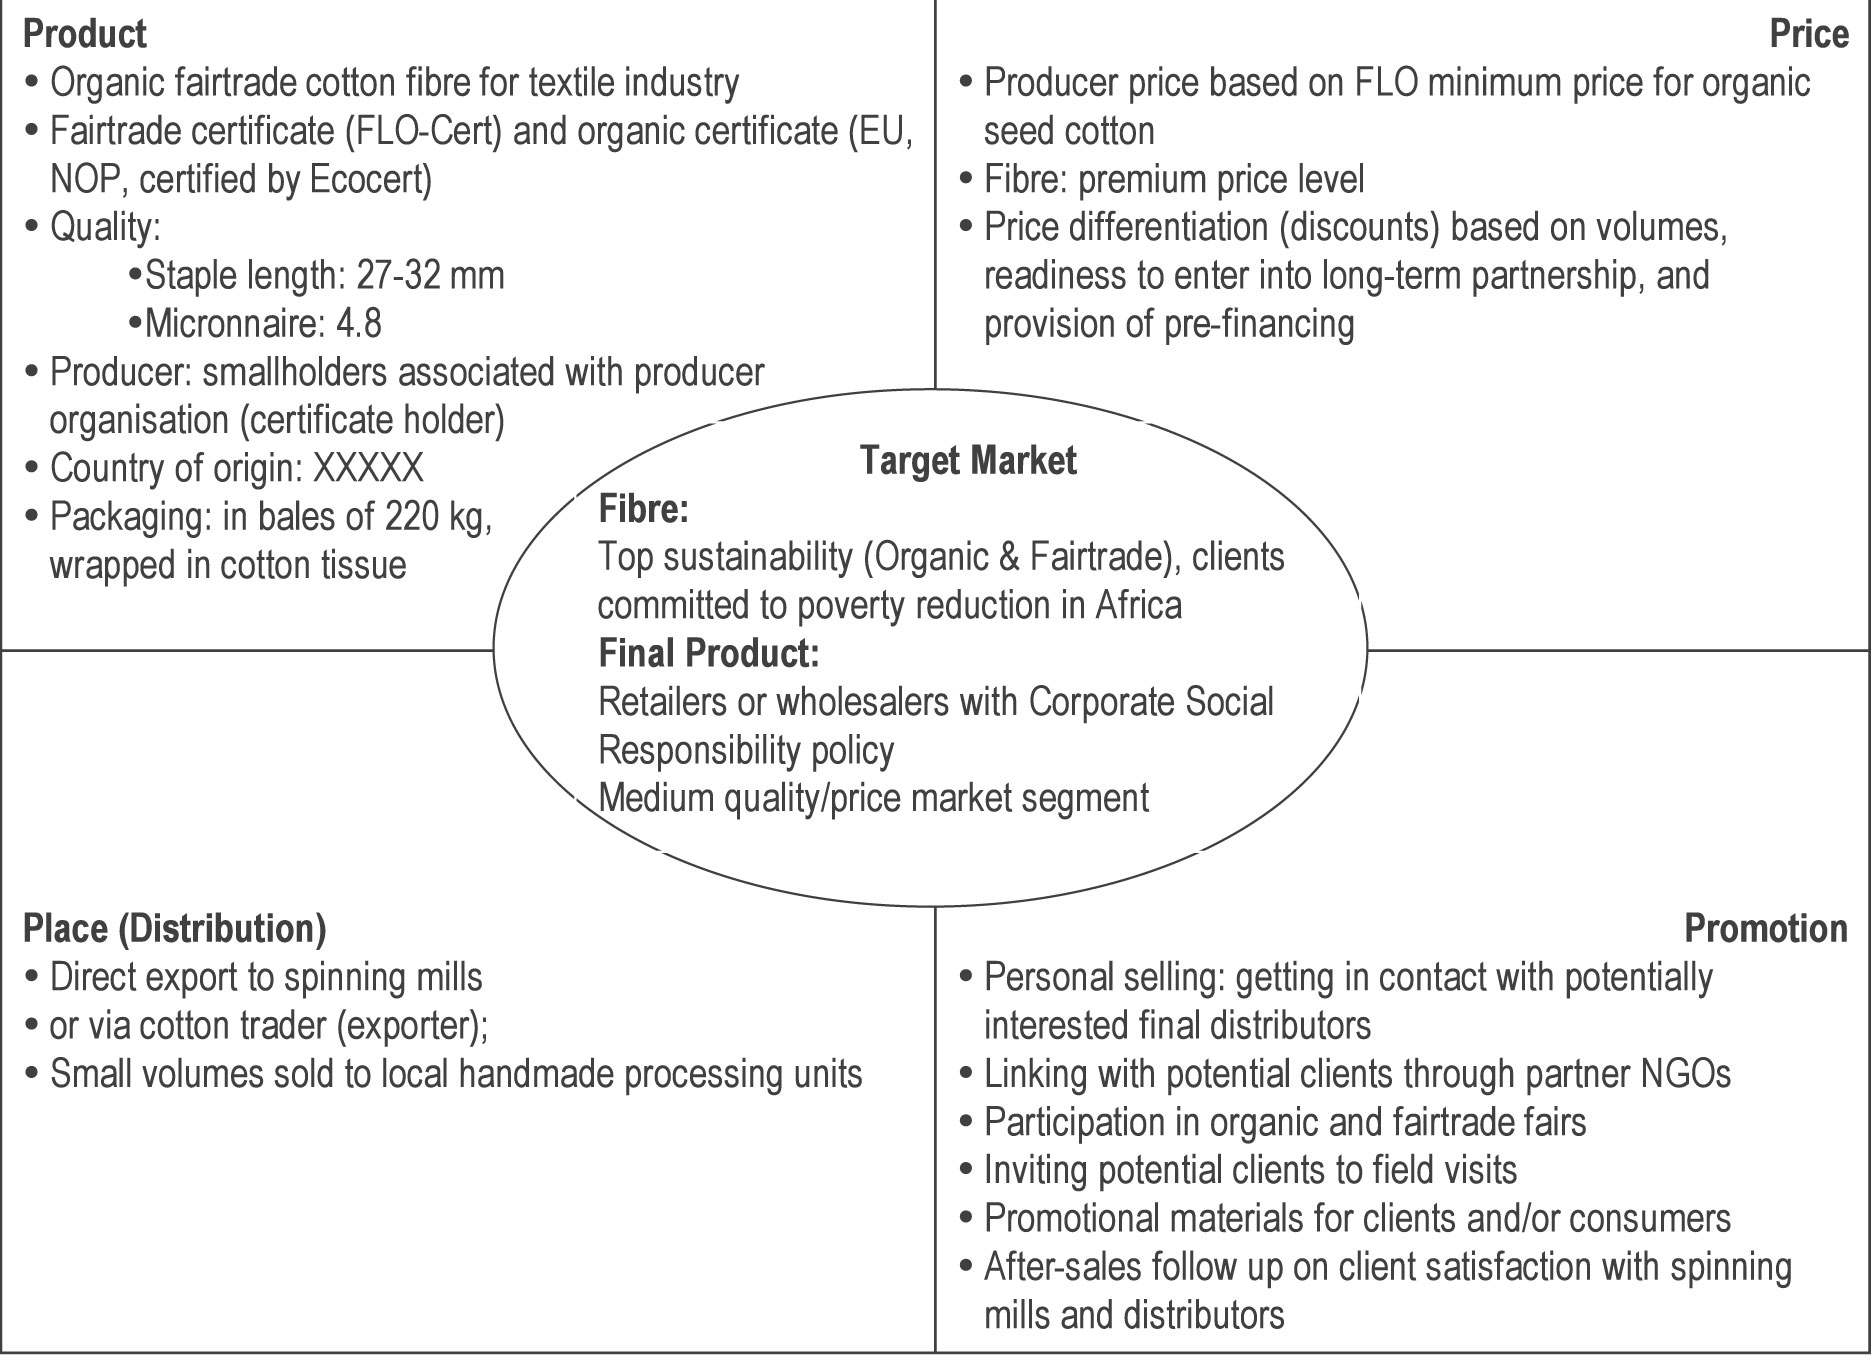 marketing plan for fair trade products essay